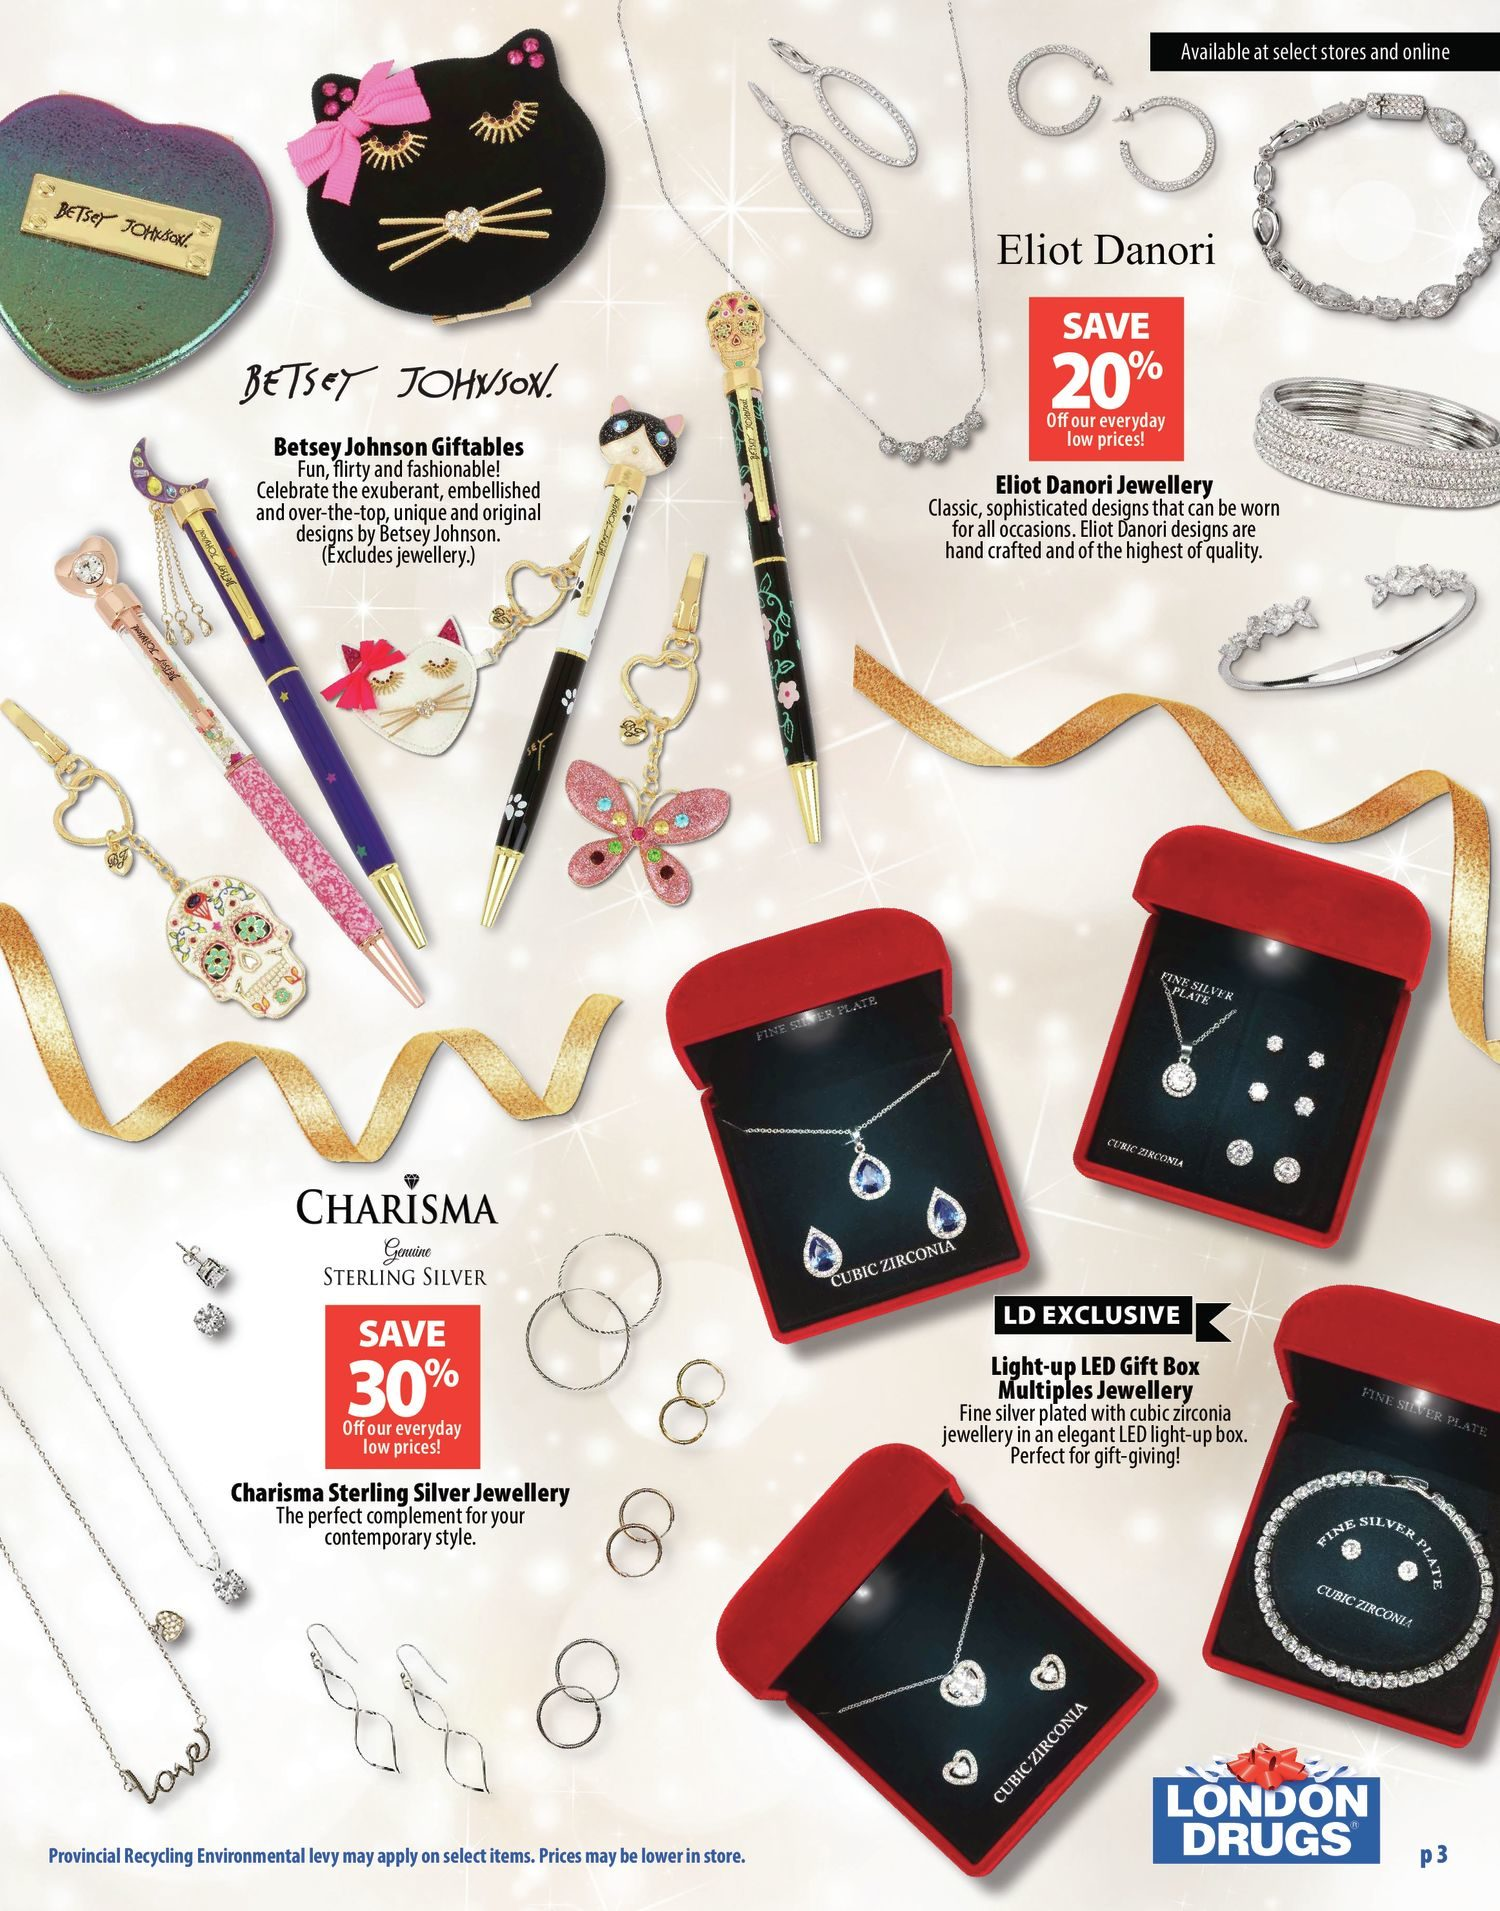 London Drugs Weekly Flyer All Your Christmas Gifts Nov 16 24 Defunc Plus Hybrid Corded Earbud